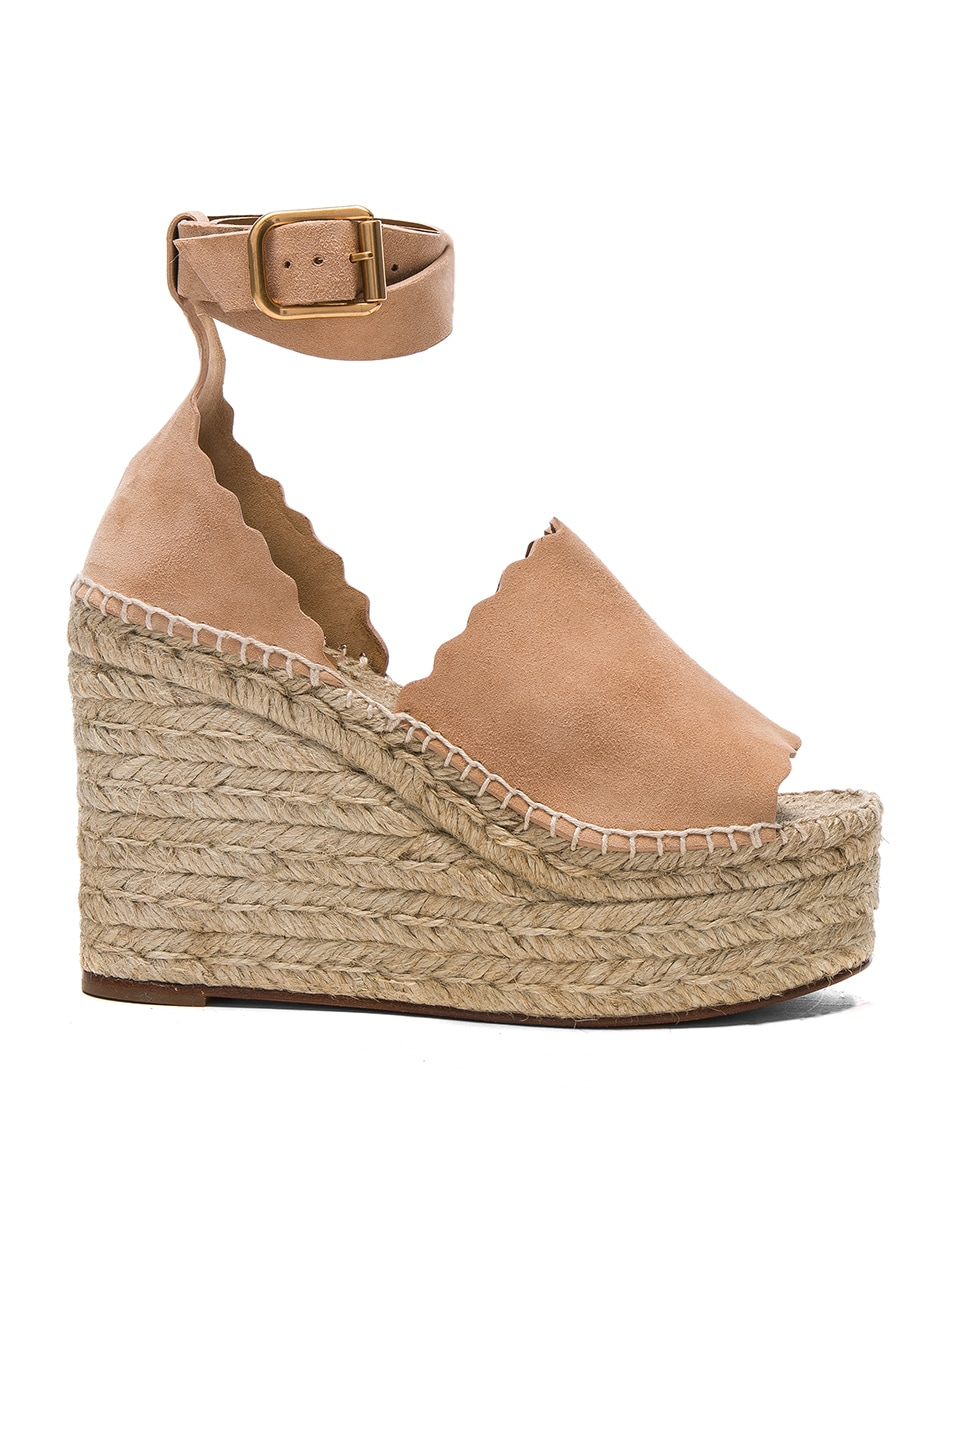 Image 1 of Chloe Suede Lauren Espadrille Wedges in Reef Shell